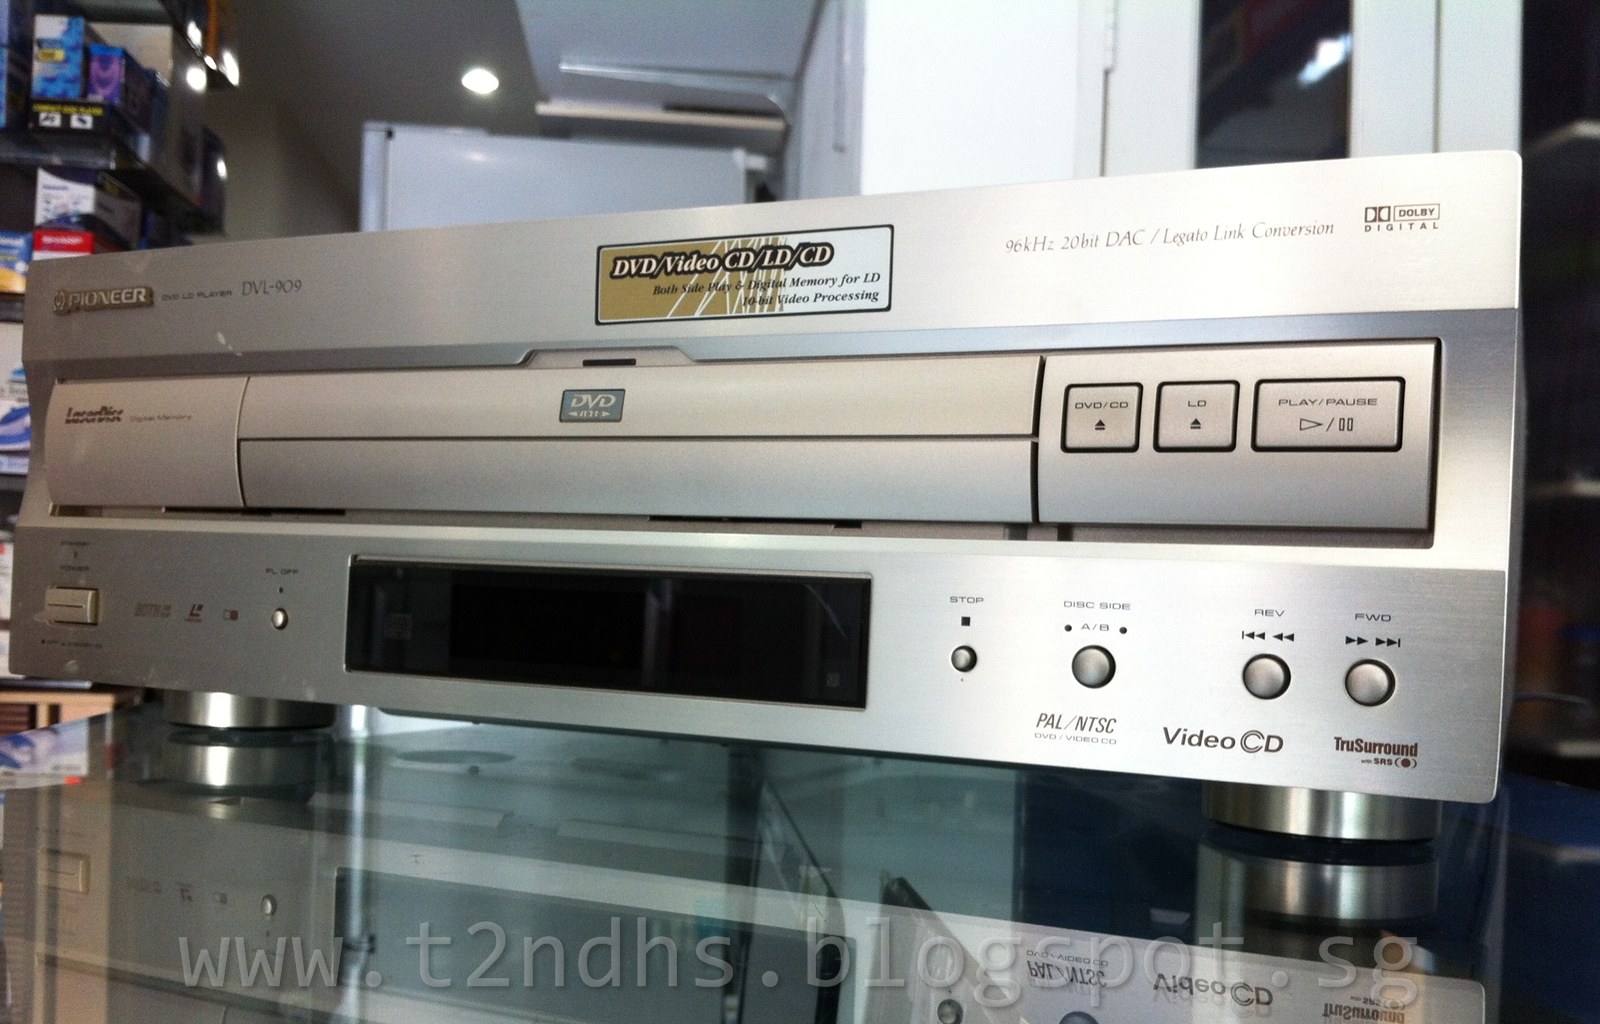 The 2nd Hand Shop Pioneer Dvd Vcd Ld Player